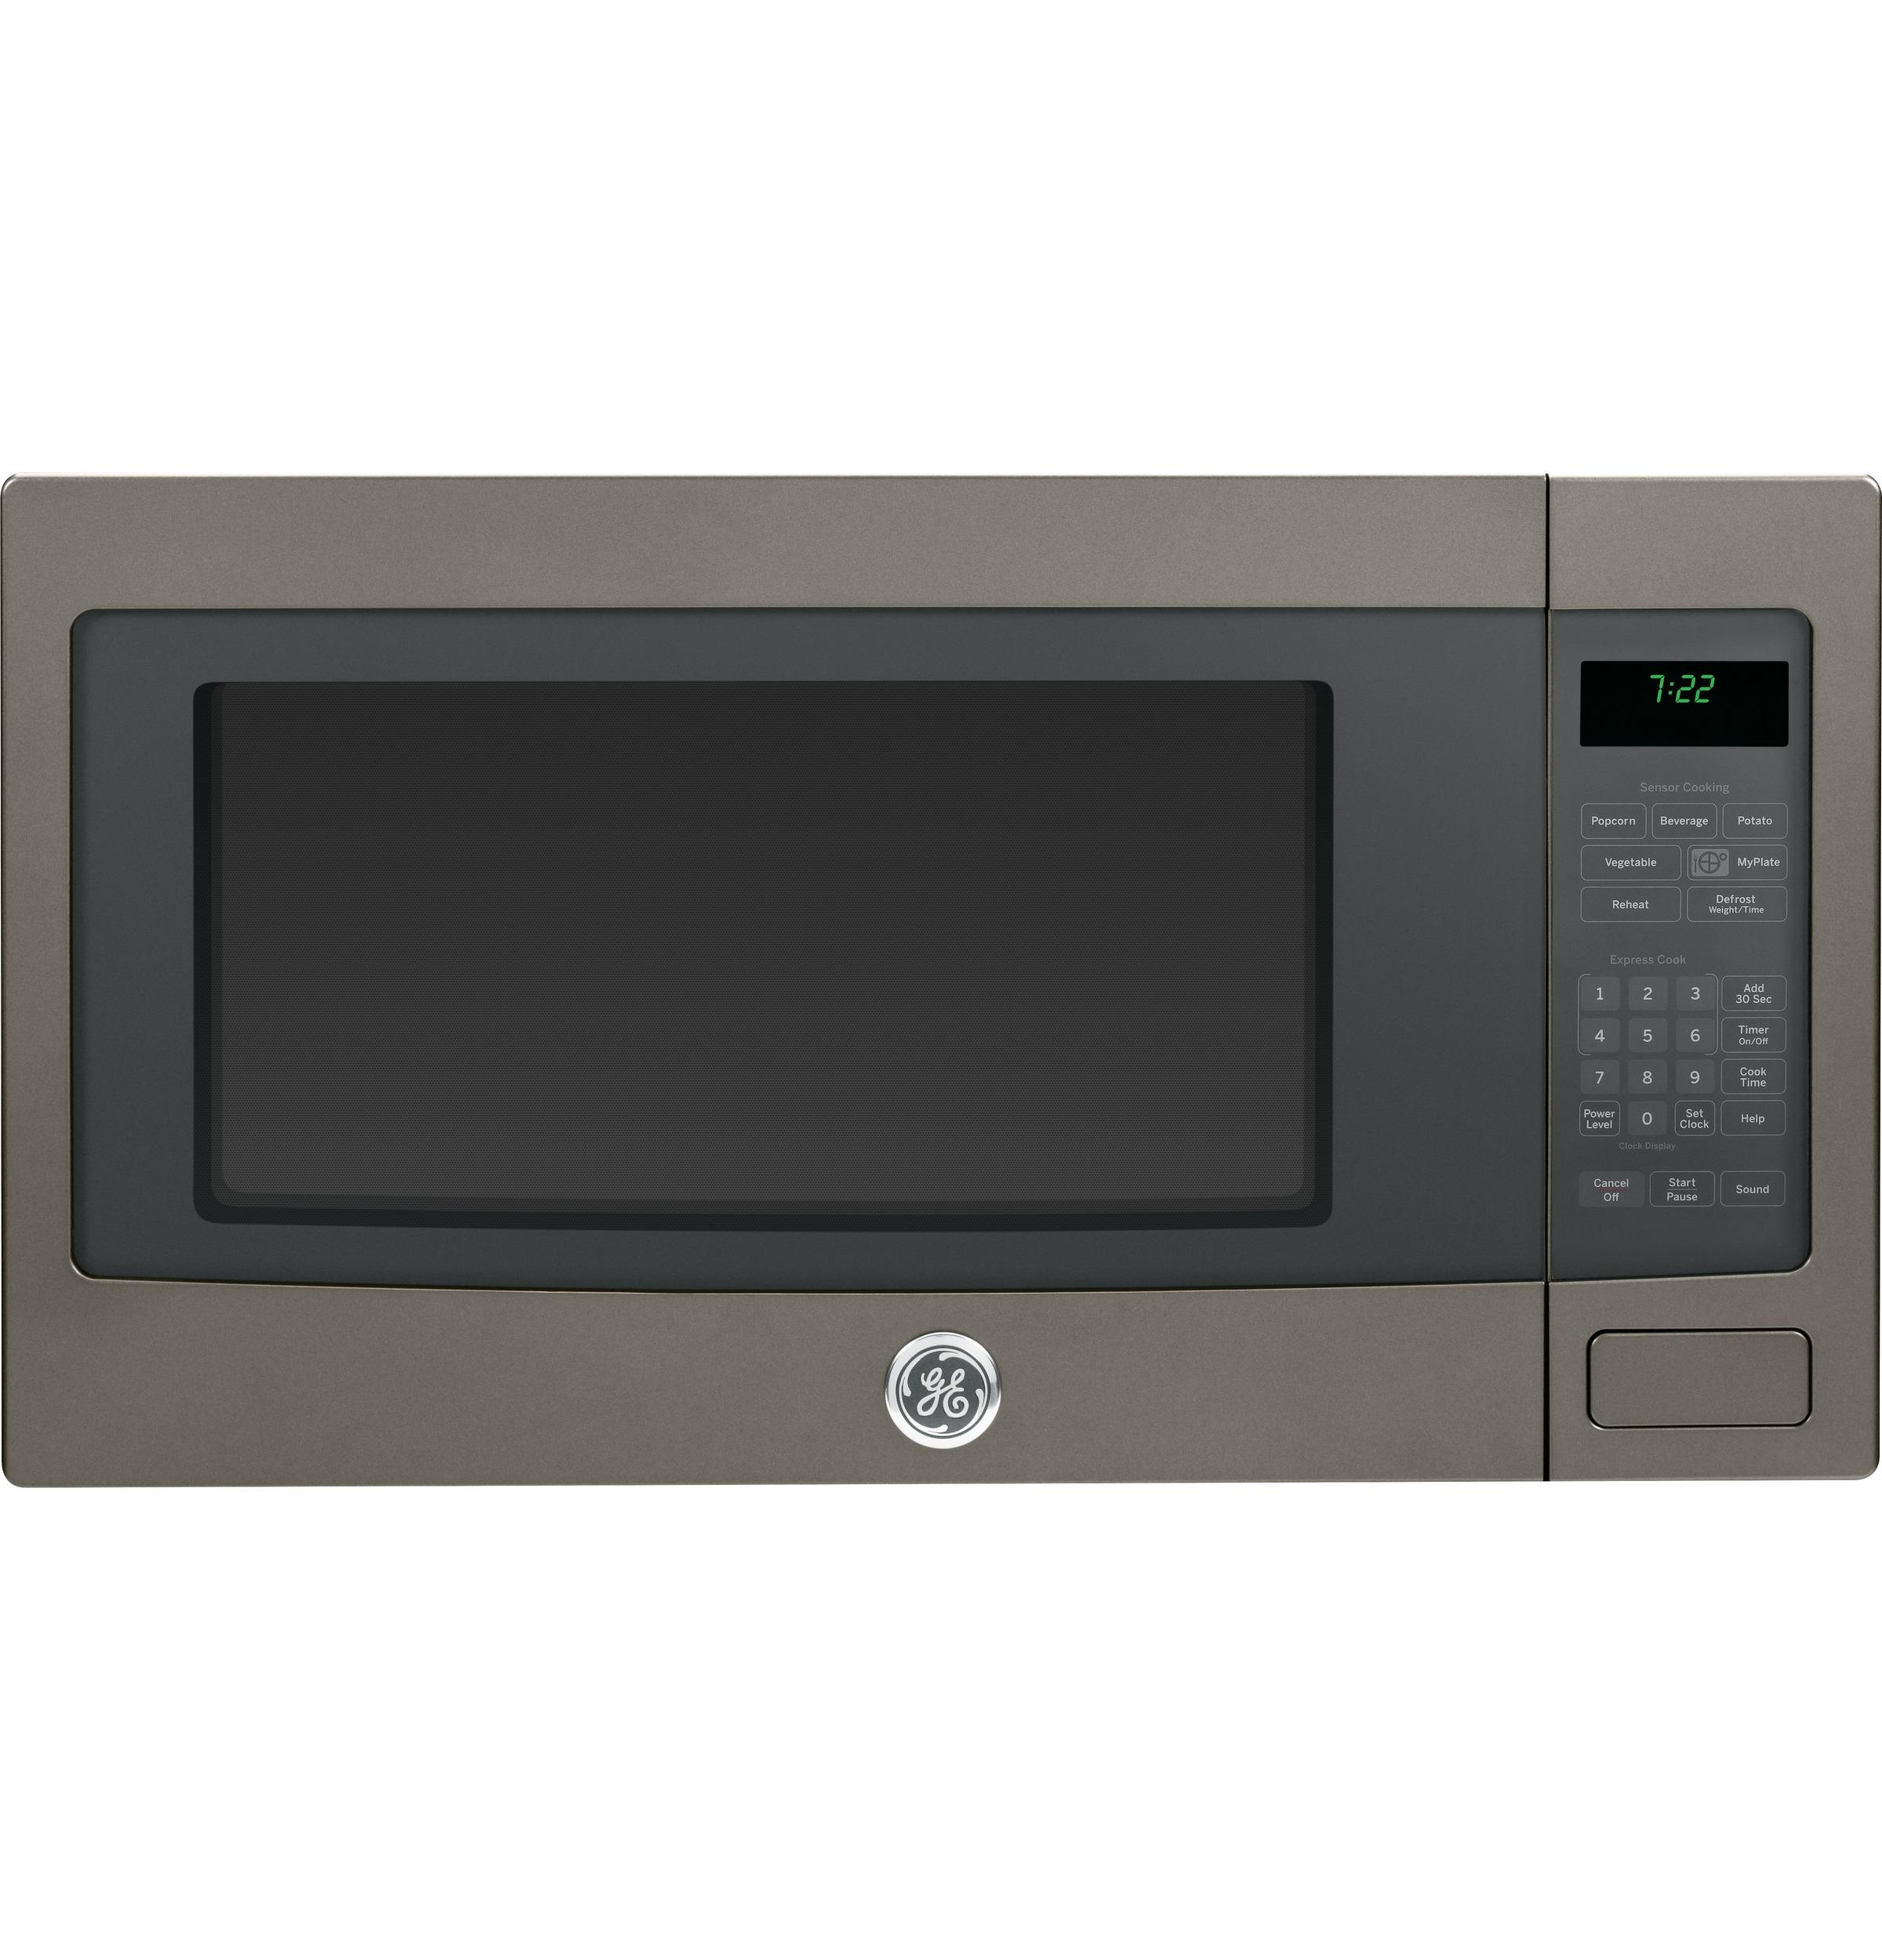 GE Profile PEB7226EHES 2.2 cu. ft. Countertop Microwave Oven Slate